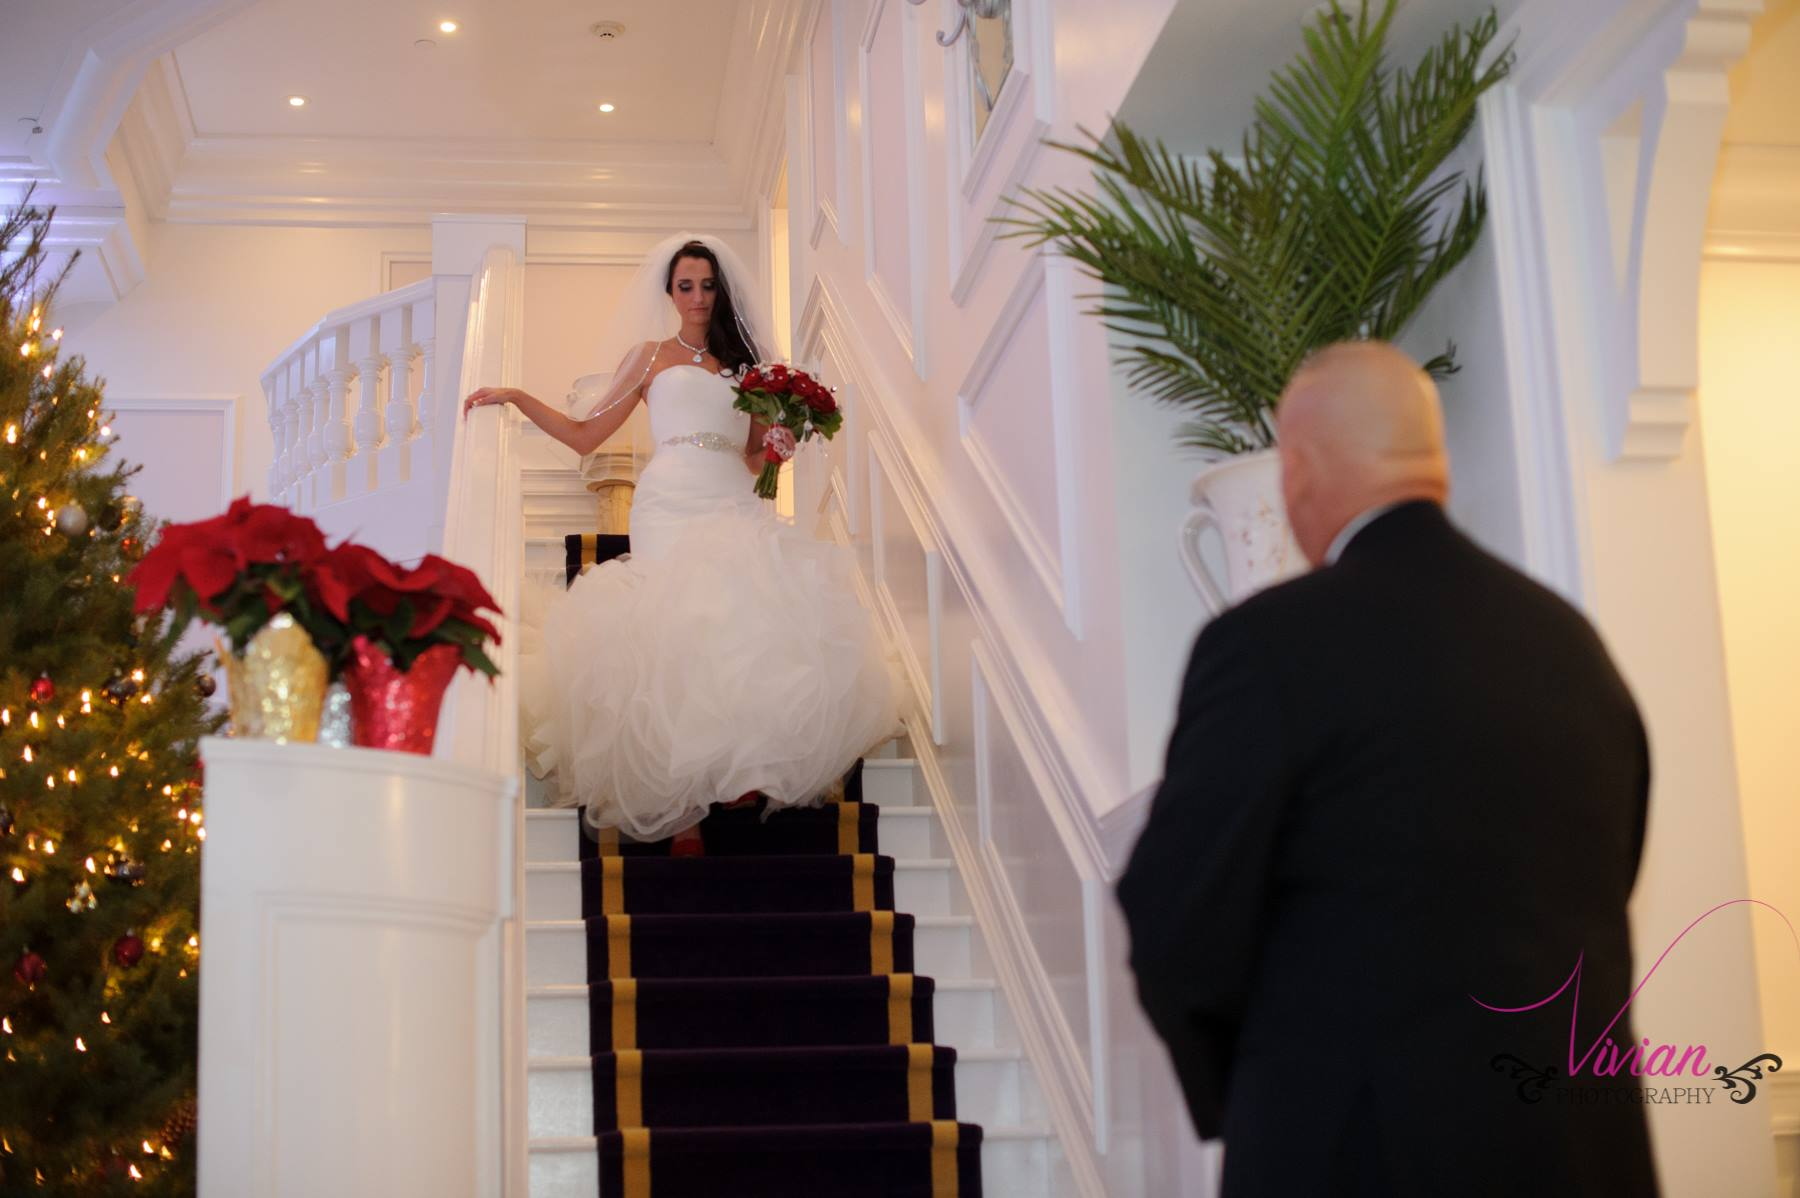 bride-coming-down-staircase.jpg